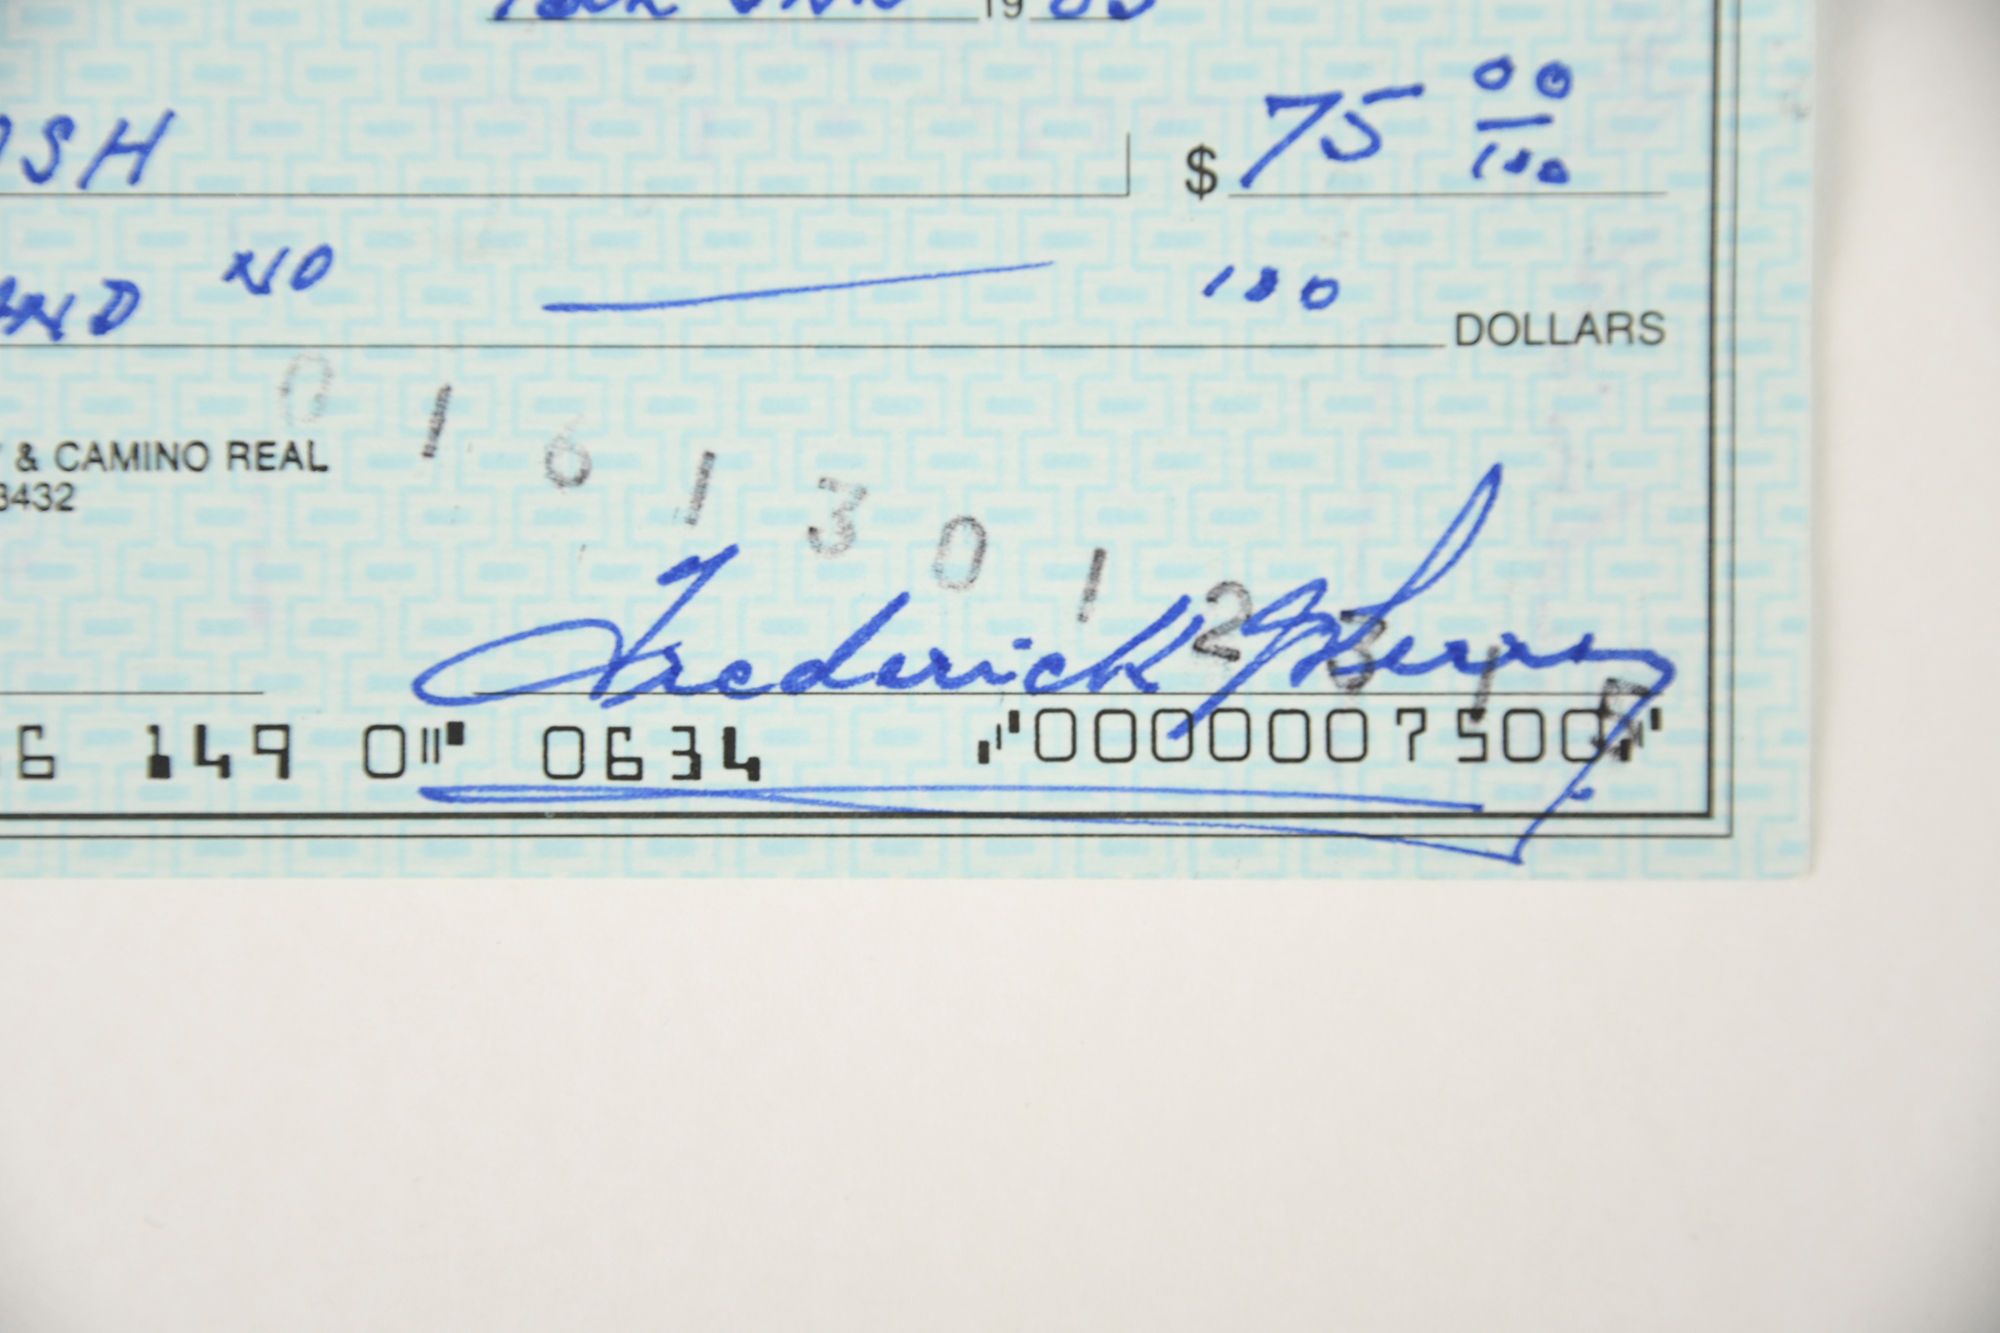 FRED PERRY Original signature on cheque. - Image 2 of 2